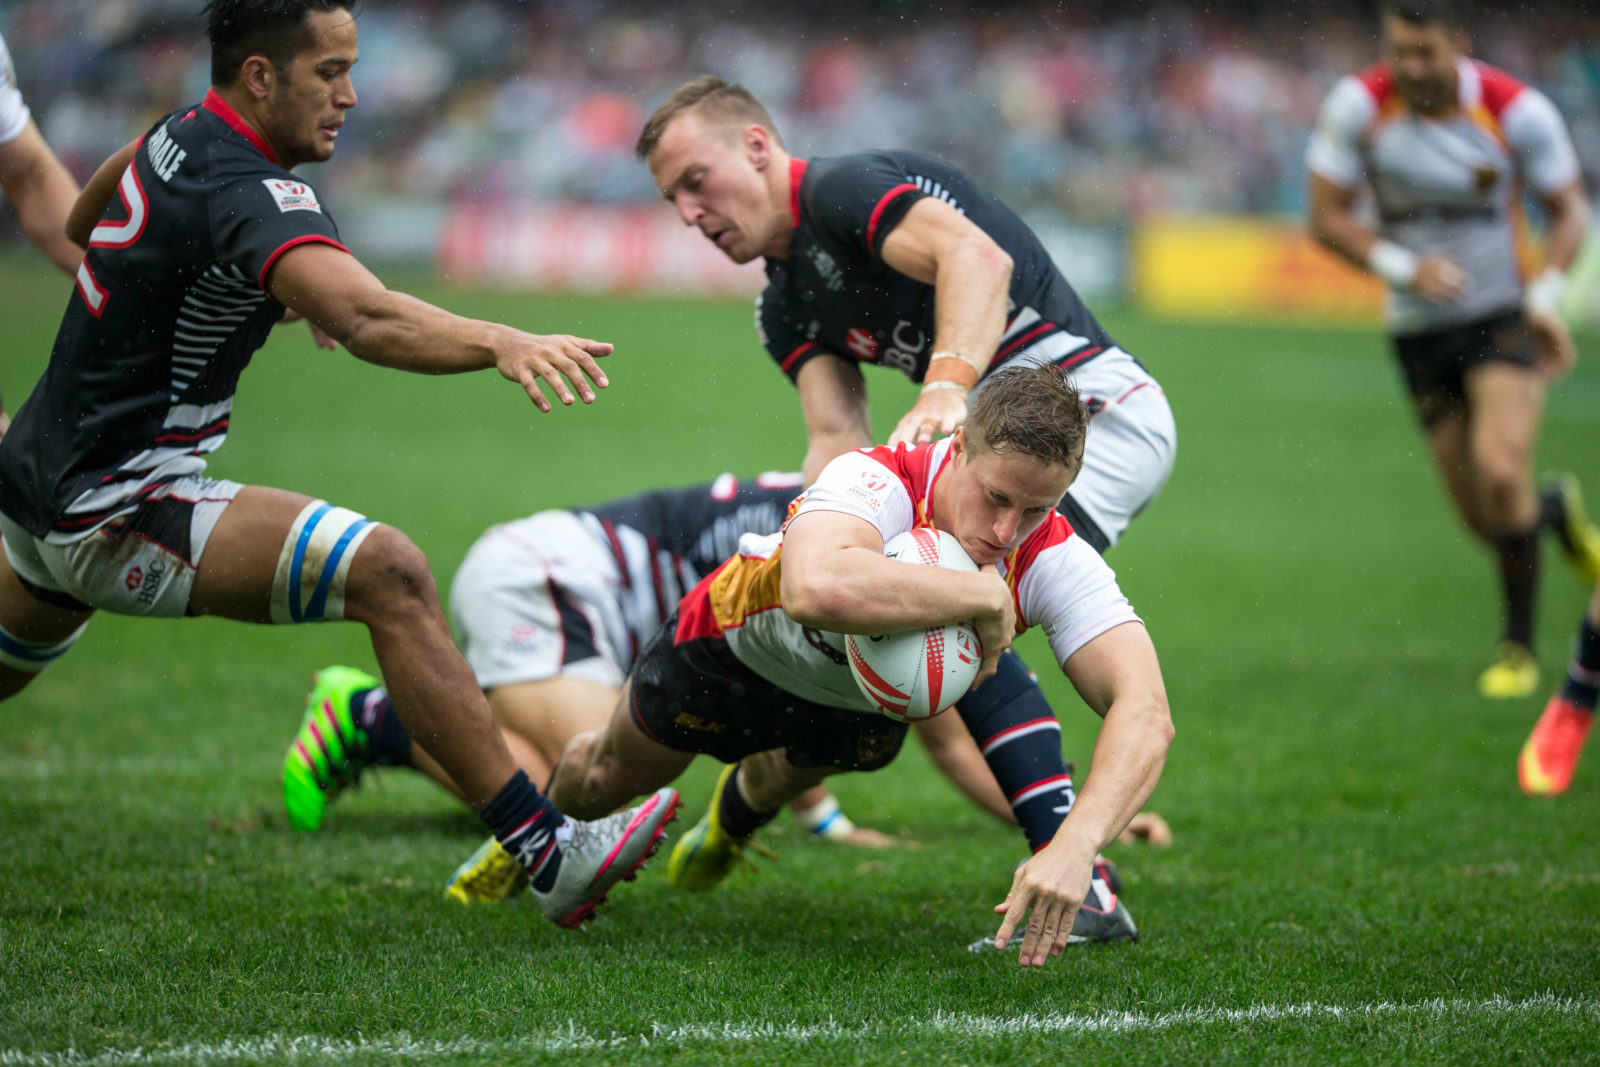 World-class rugby7s comes to Munich's Olympic Stadium -- photo: Oktoberfest7s